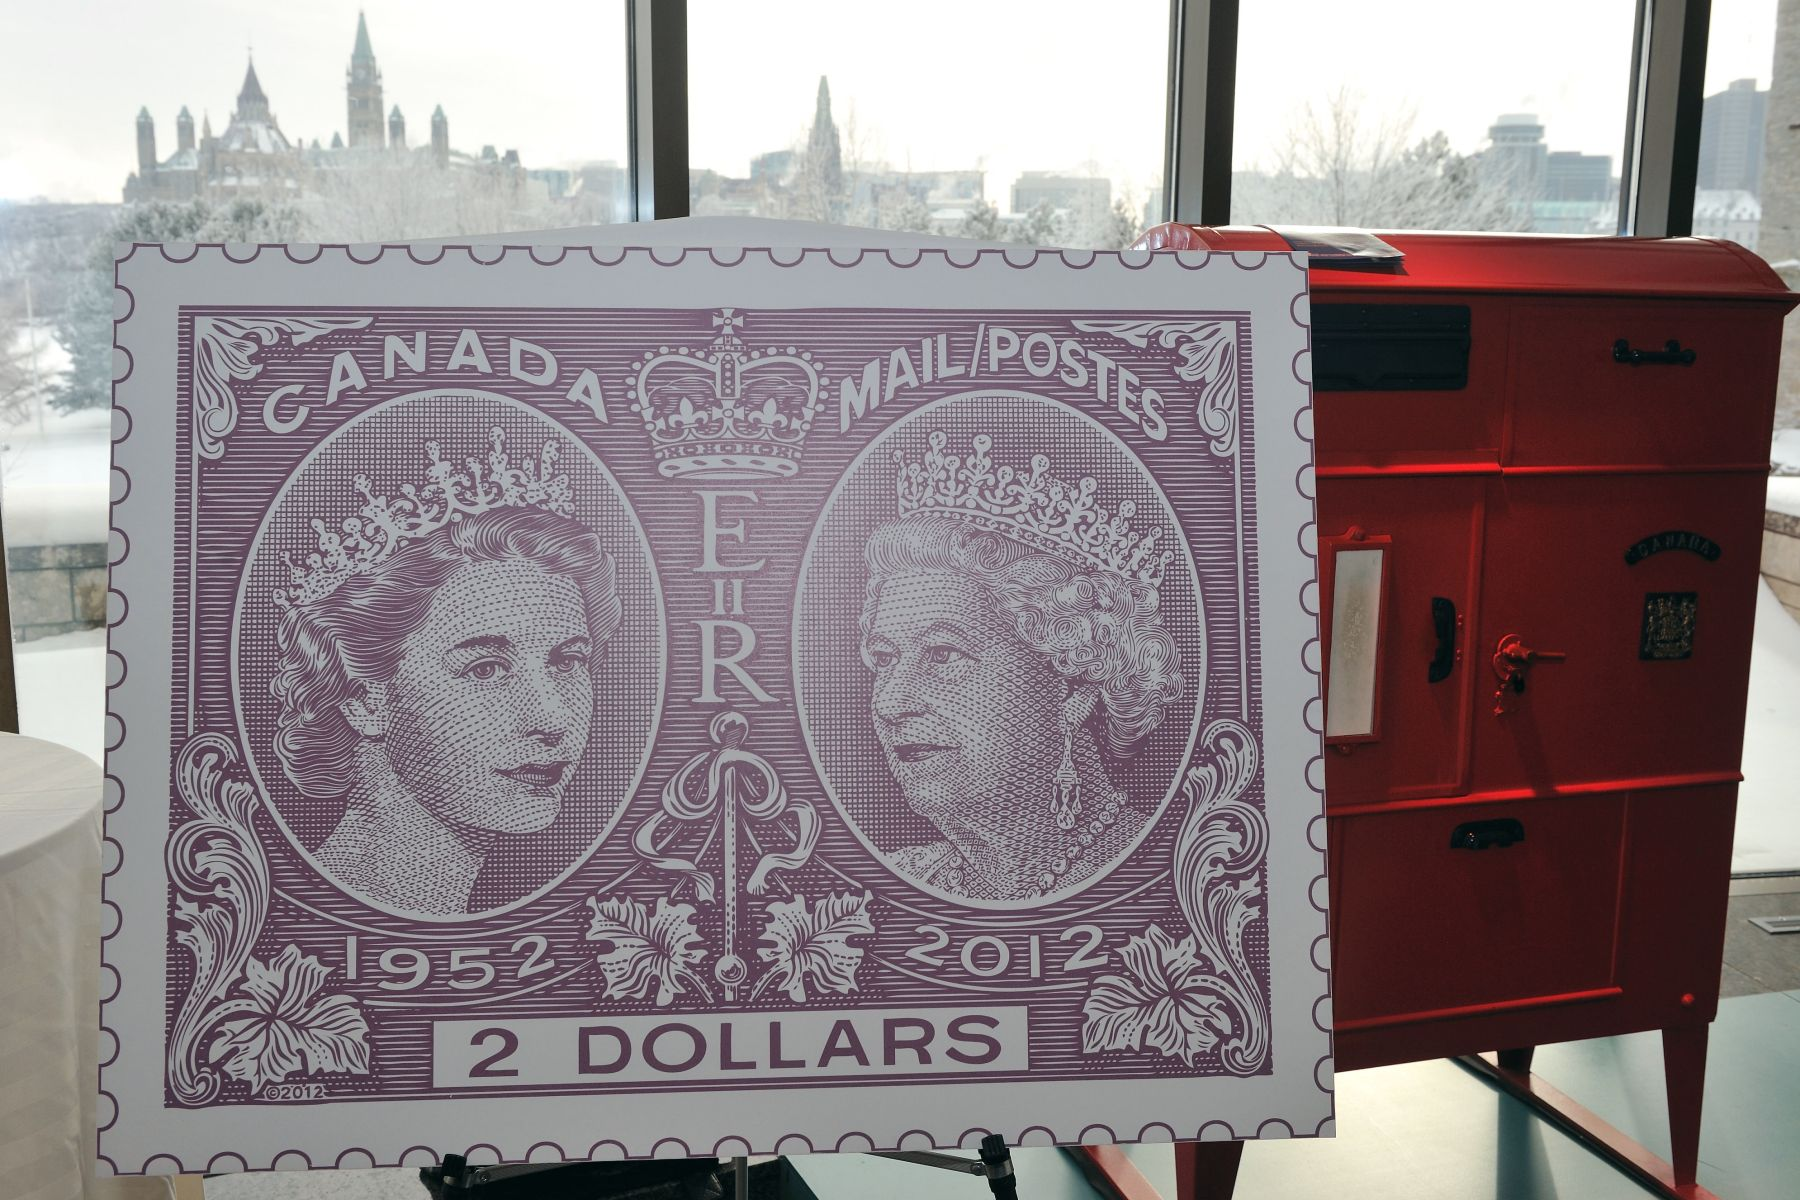 The final stamp issue will feature an engraved stamp with two portraits of The Queen, a design inspired by the famous Canadian stamp issued, in 1897, for Queen Victoria's Diamond Jubilee.